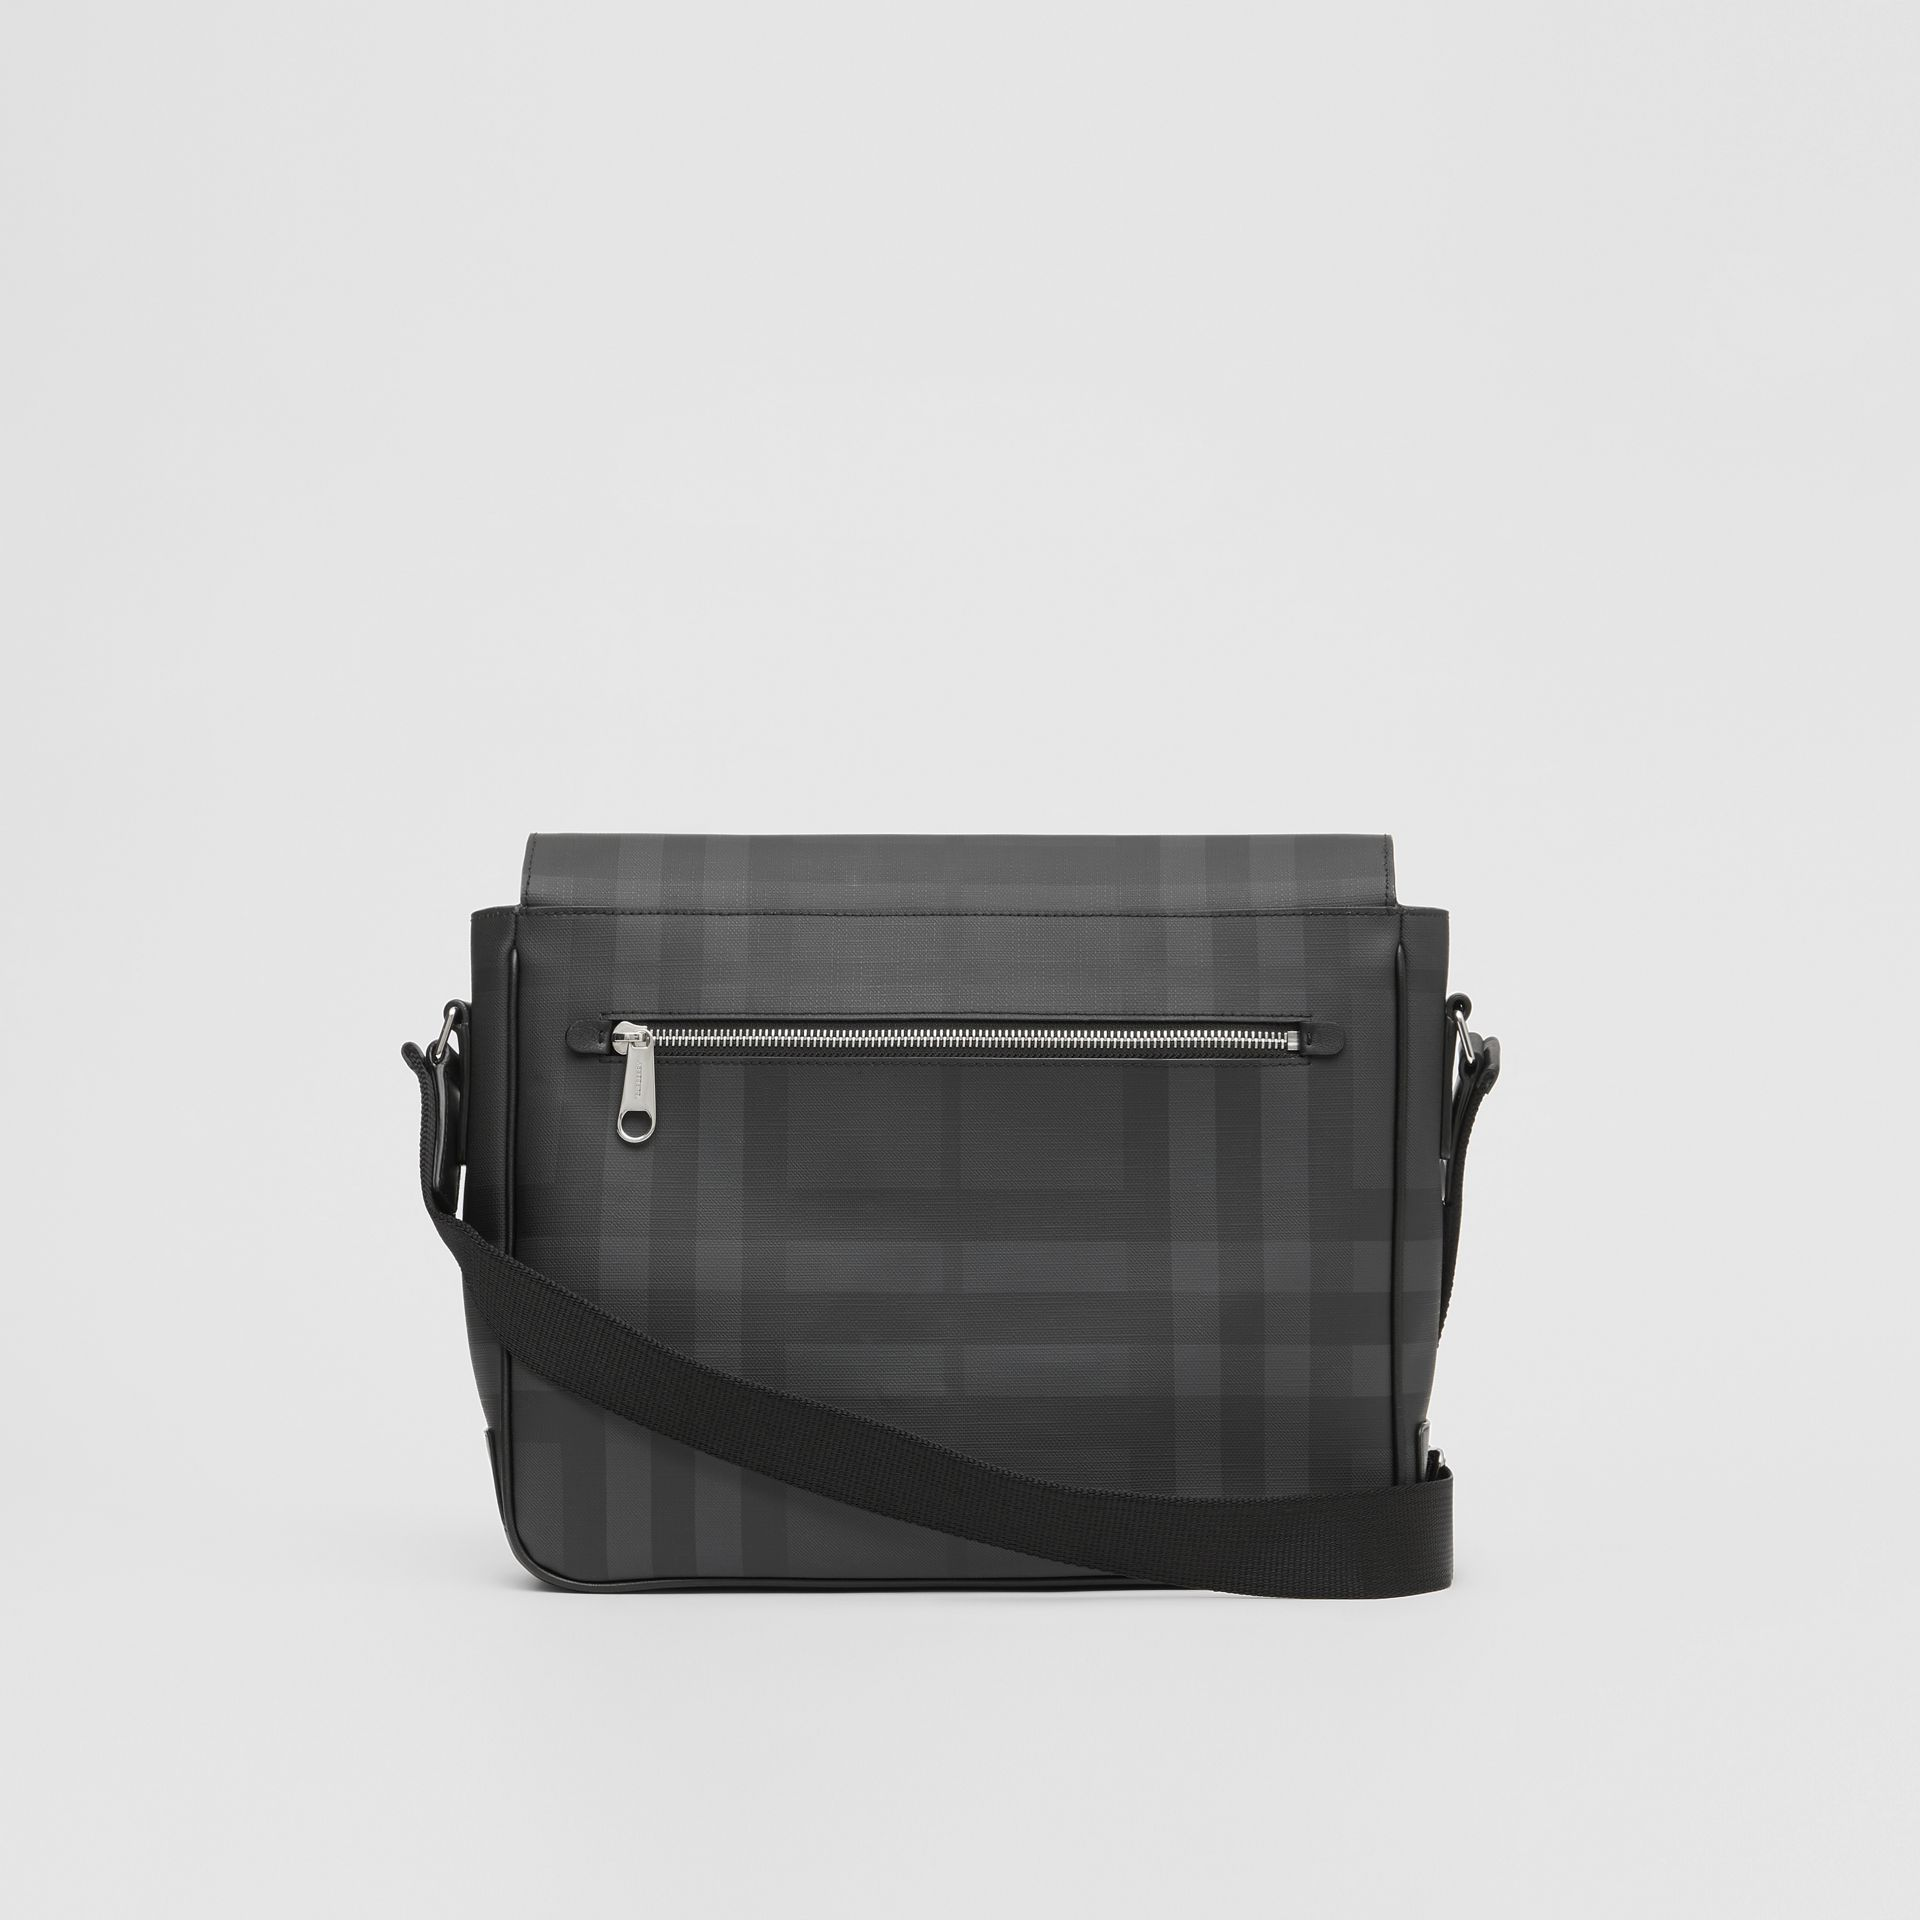 Sac cartable en tissu London check et cuir (Anthracite Sombre) - Homme | Burberry - photo de la galerie 7